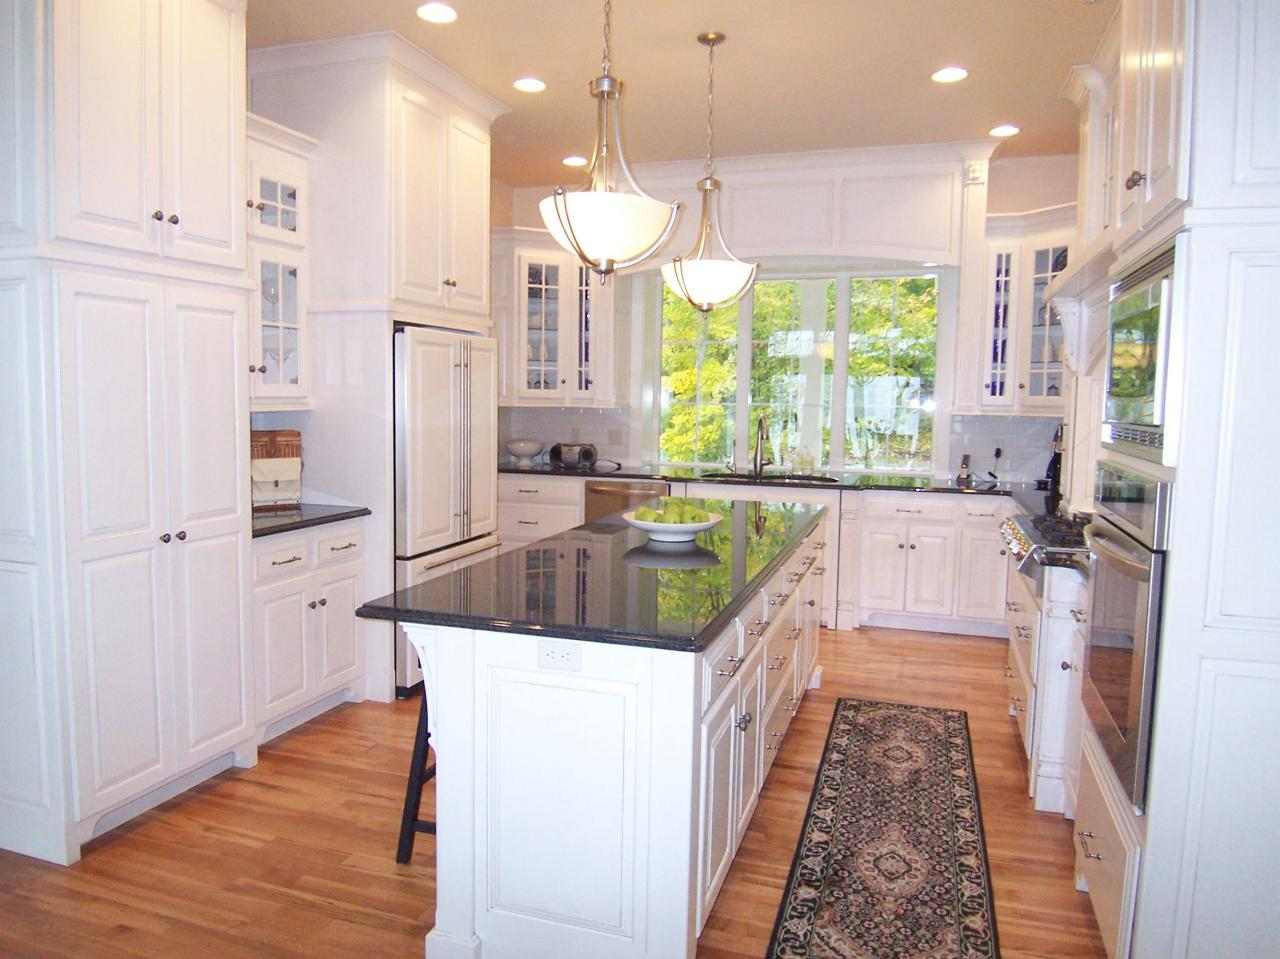 U shaped kitchens hgtv for 9x9 kitchen ideas